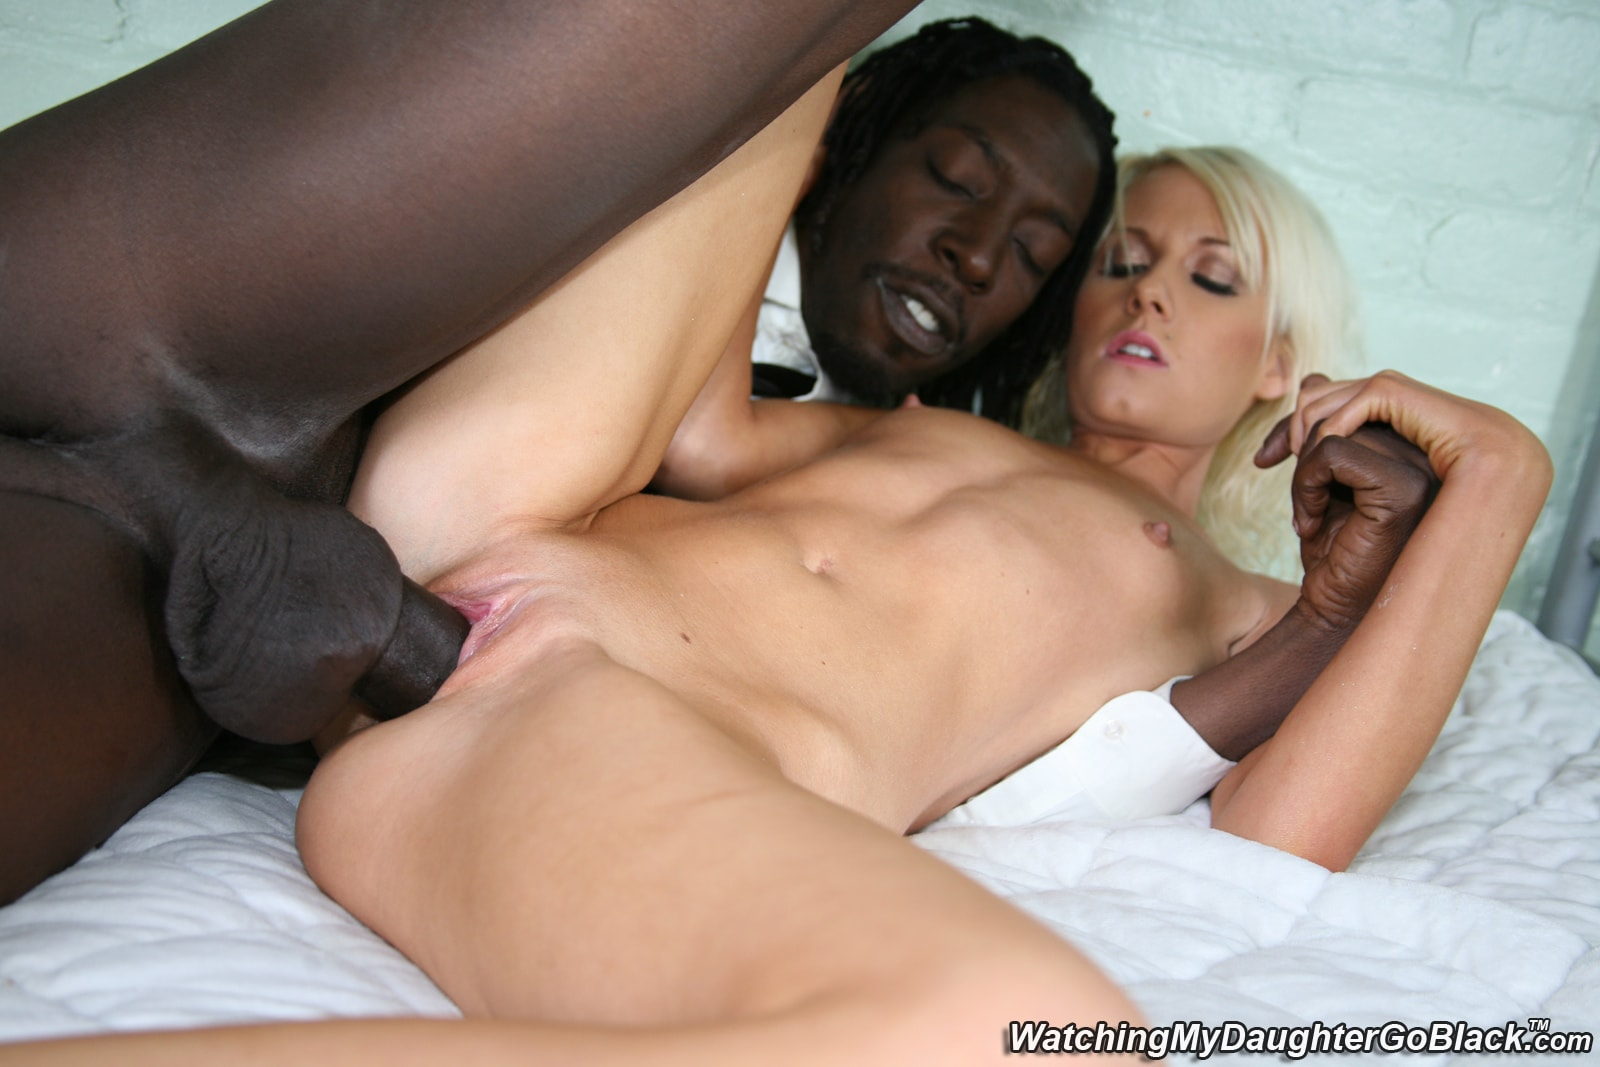 Bisexual woman threesomes porn